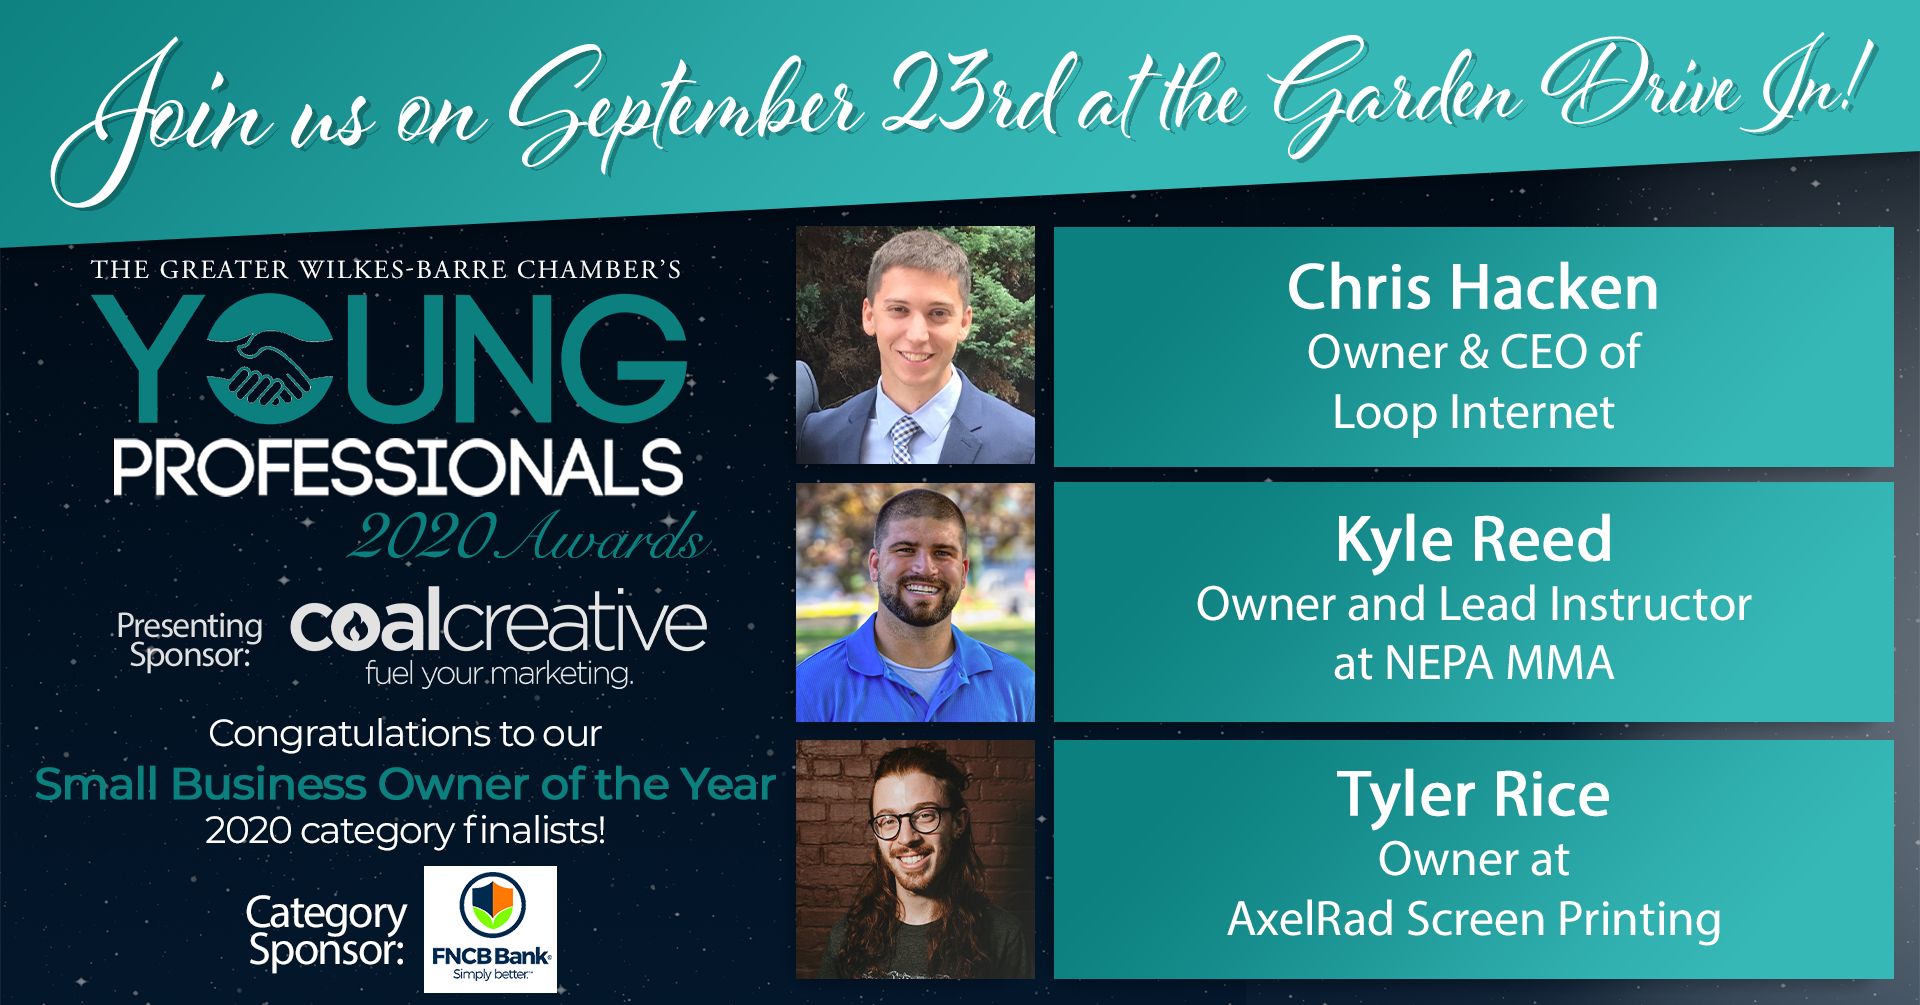 Meet the 2020 Young Professionals Category Finalists for Small Business Owner of the Year!